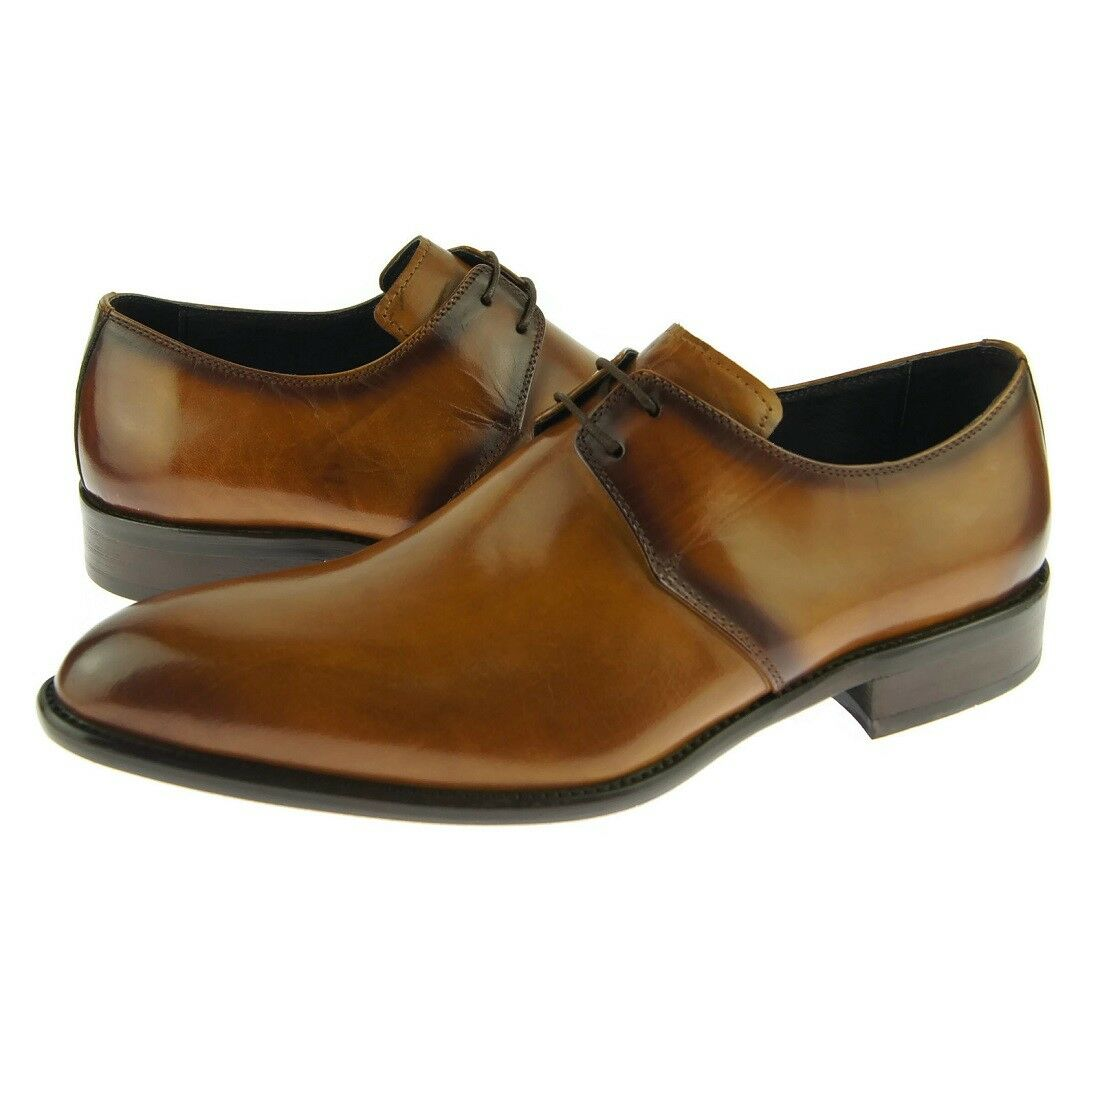 Carrucci Plain Derby, Men's Dress Leather shoes, Cognac